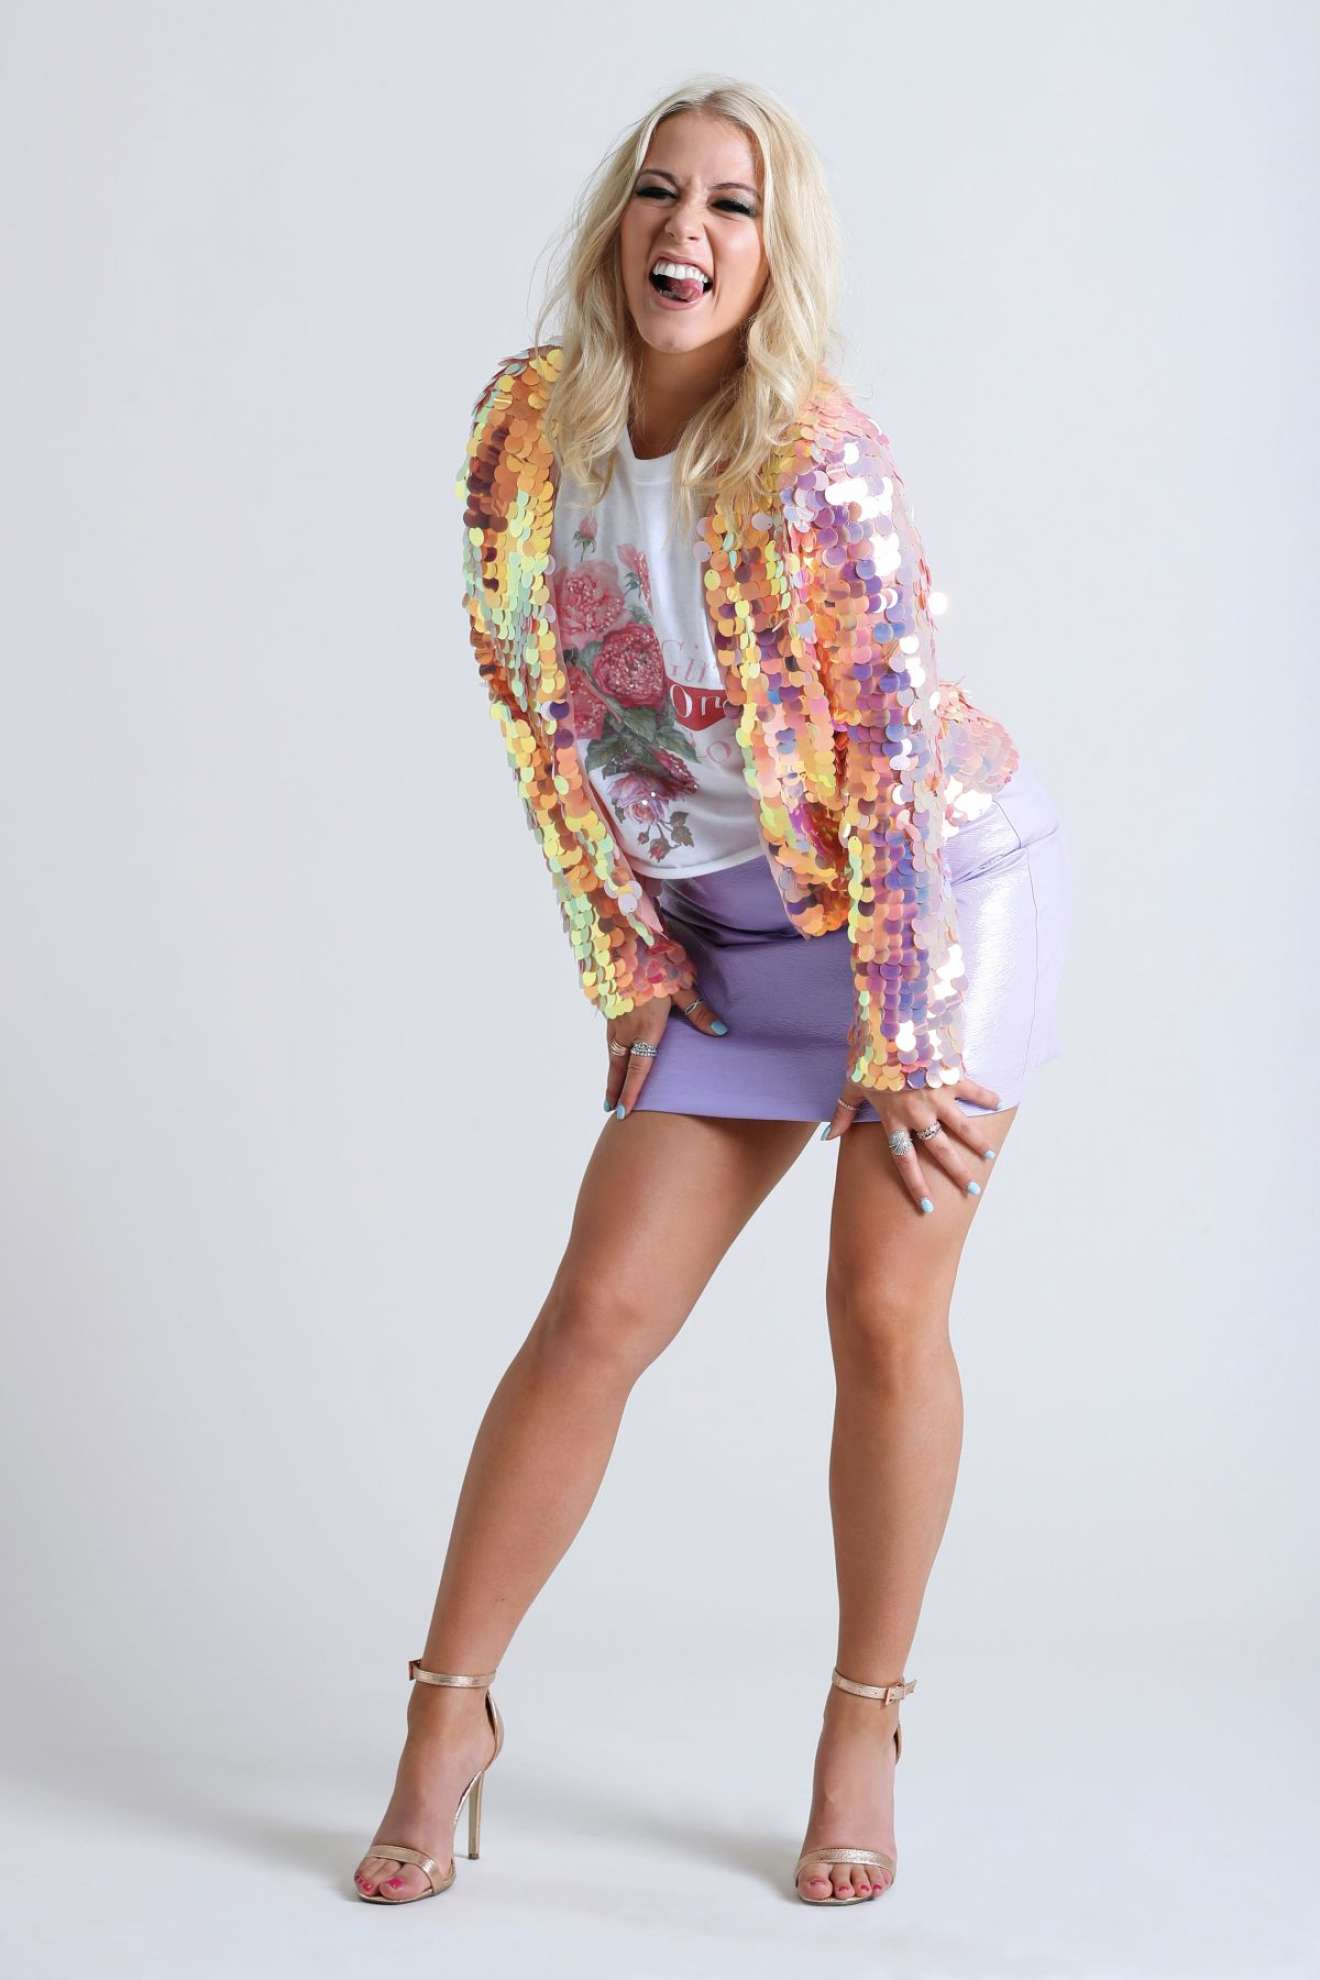 Amelia Lily - Looking Hot in Photoshoot